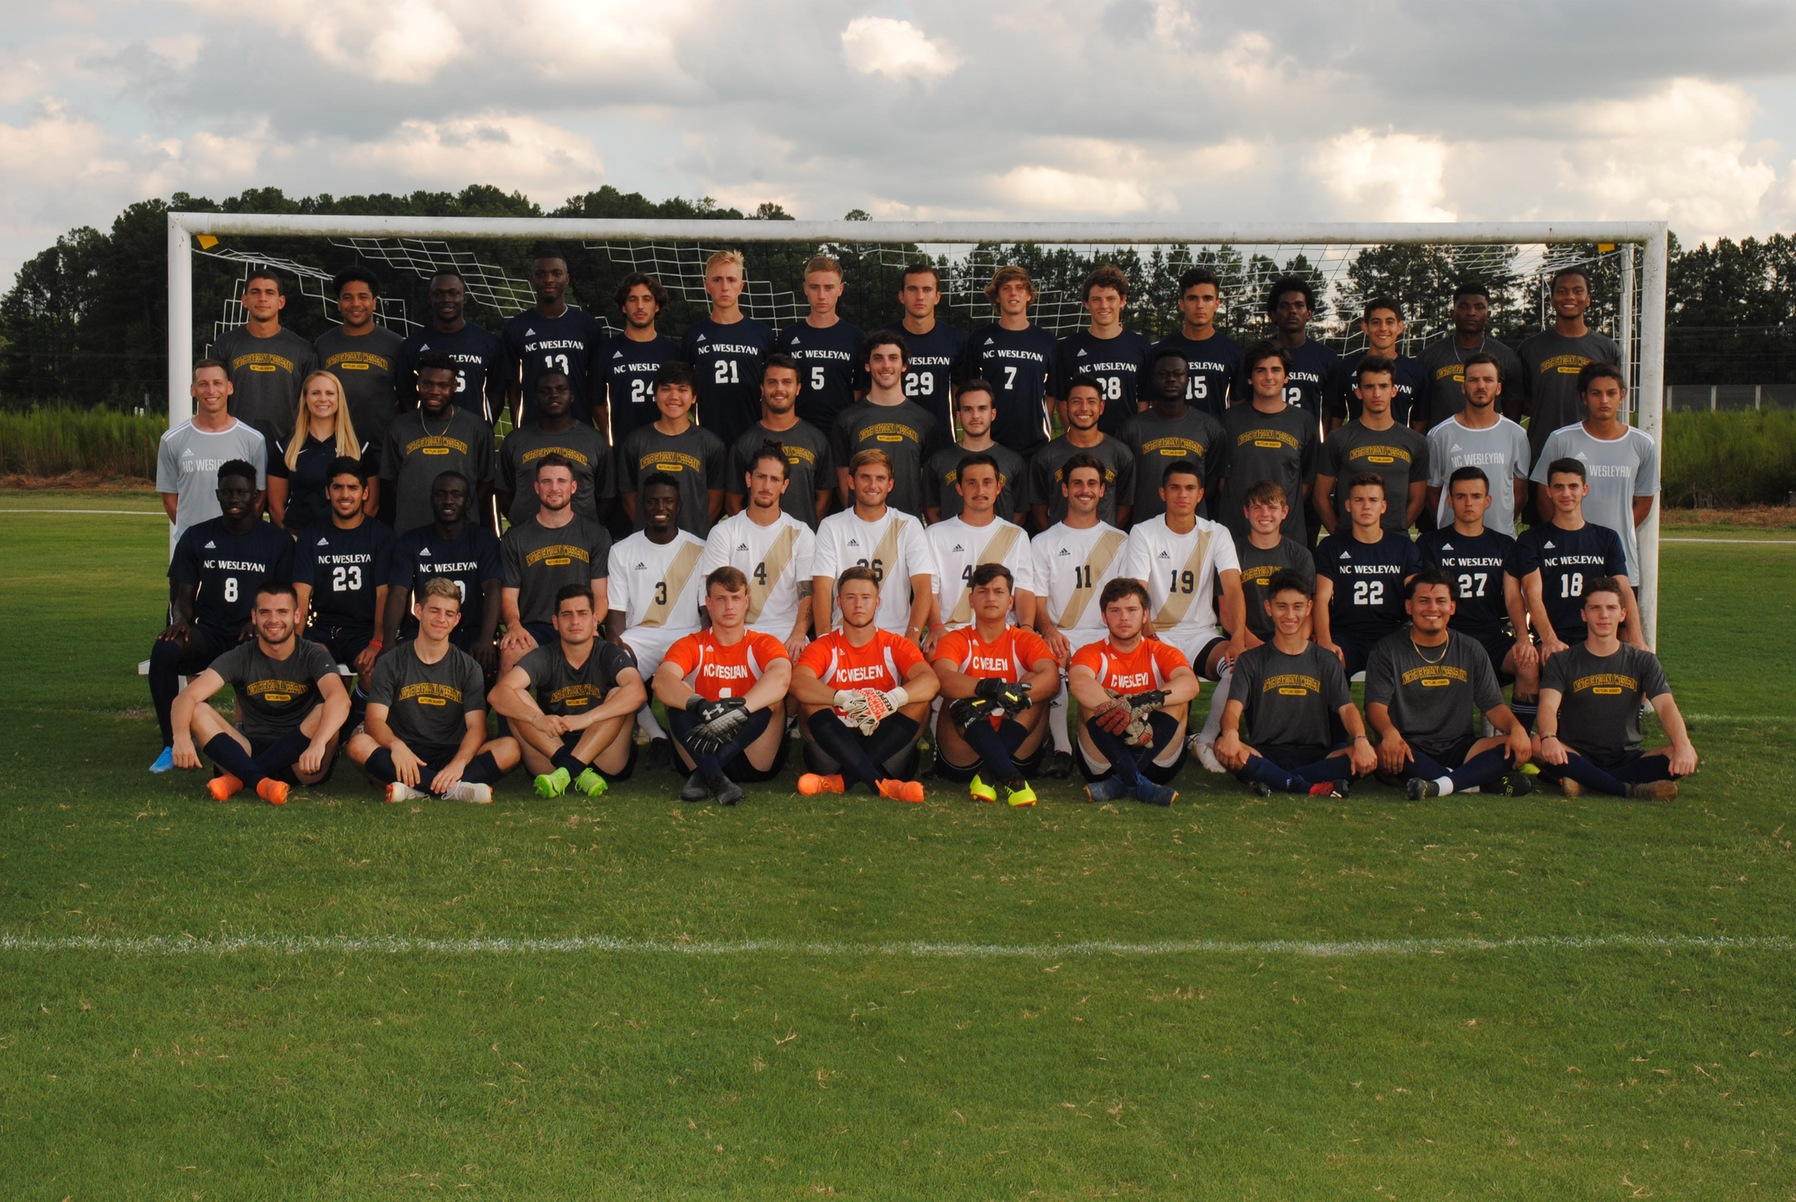 Men's Soccer Edge Methodist 2-1 to win East